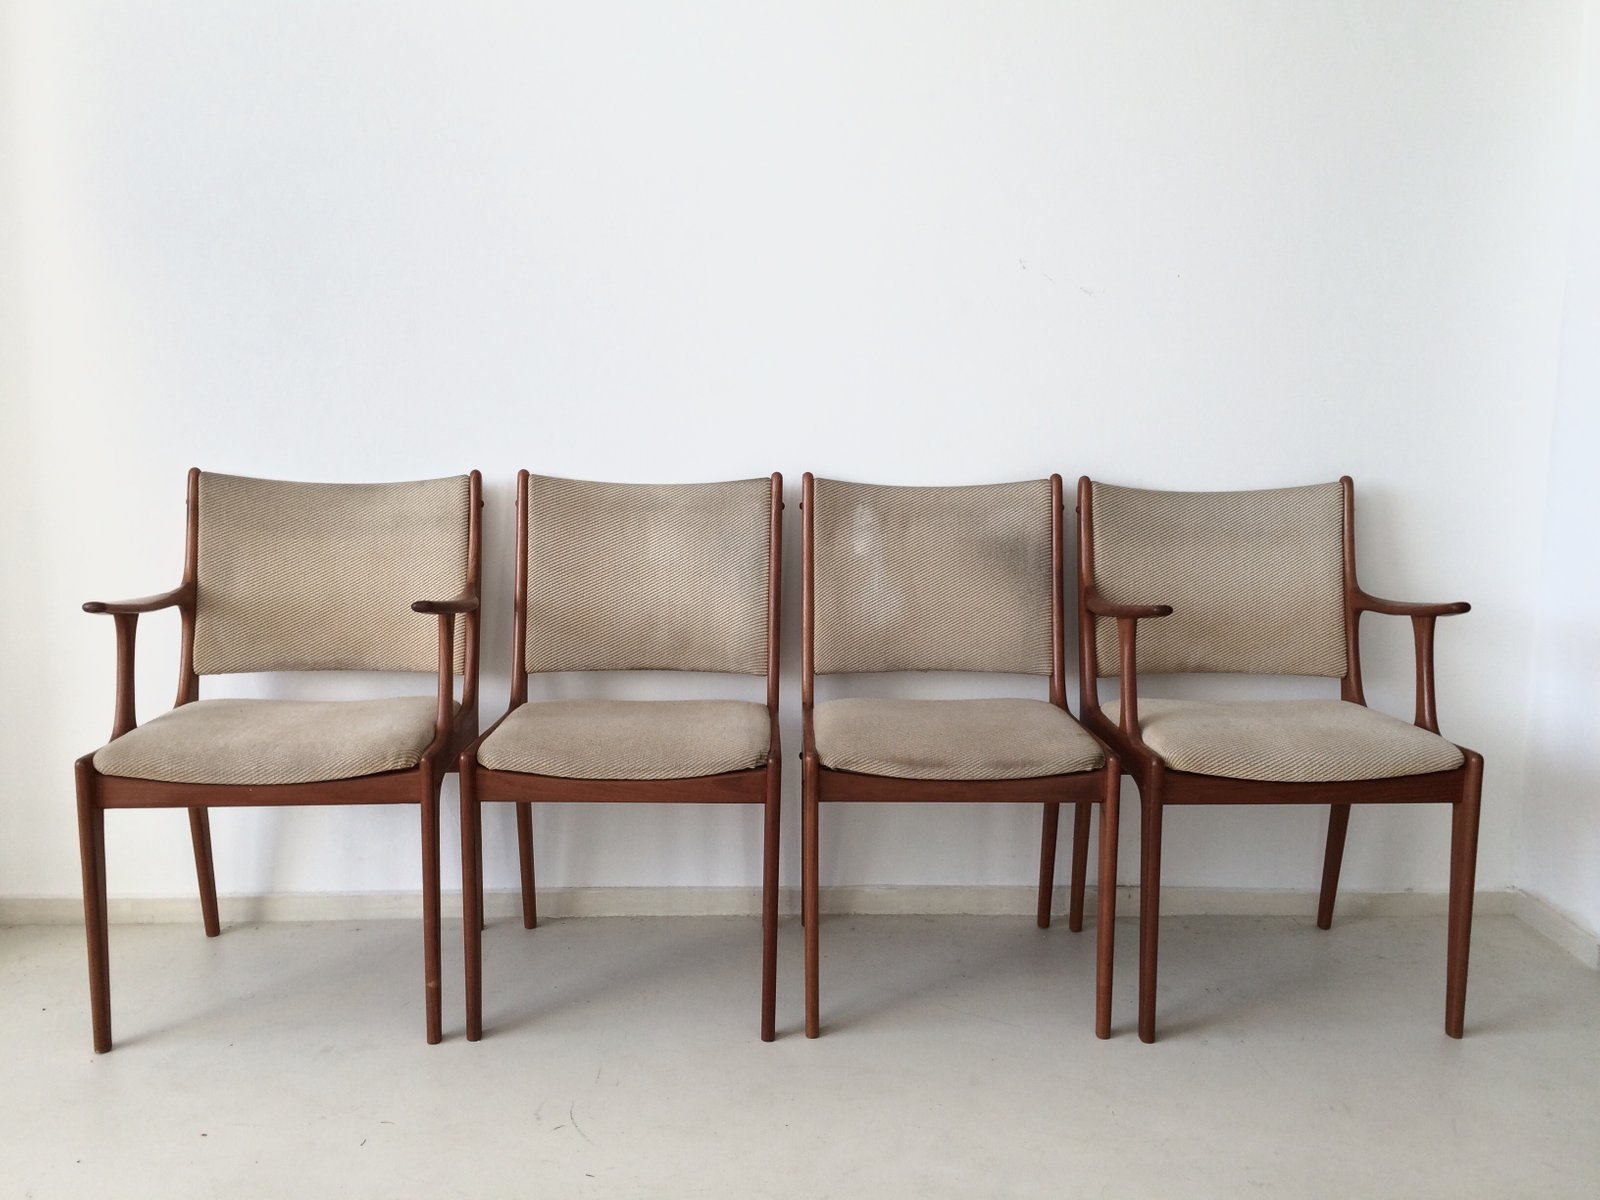 Teak Dining Chairs By Johannes Andersen For Uldum